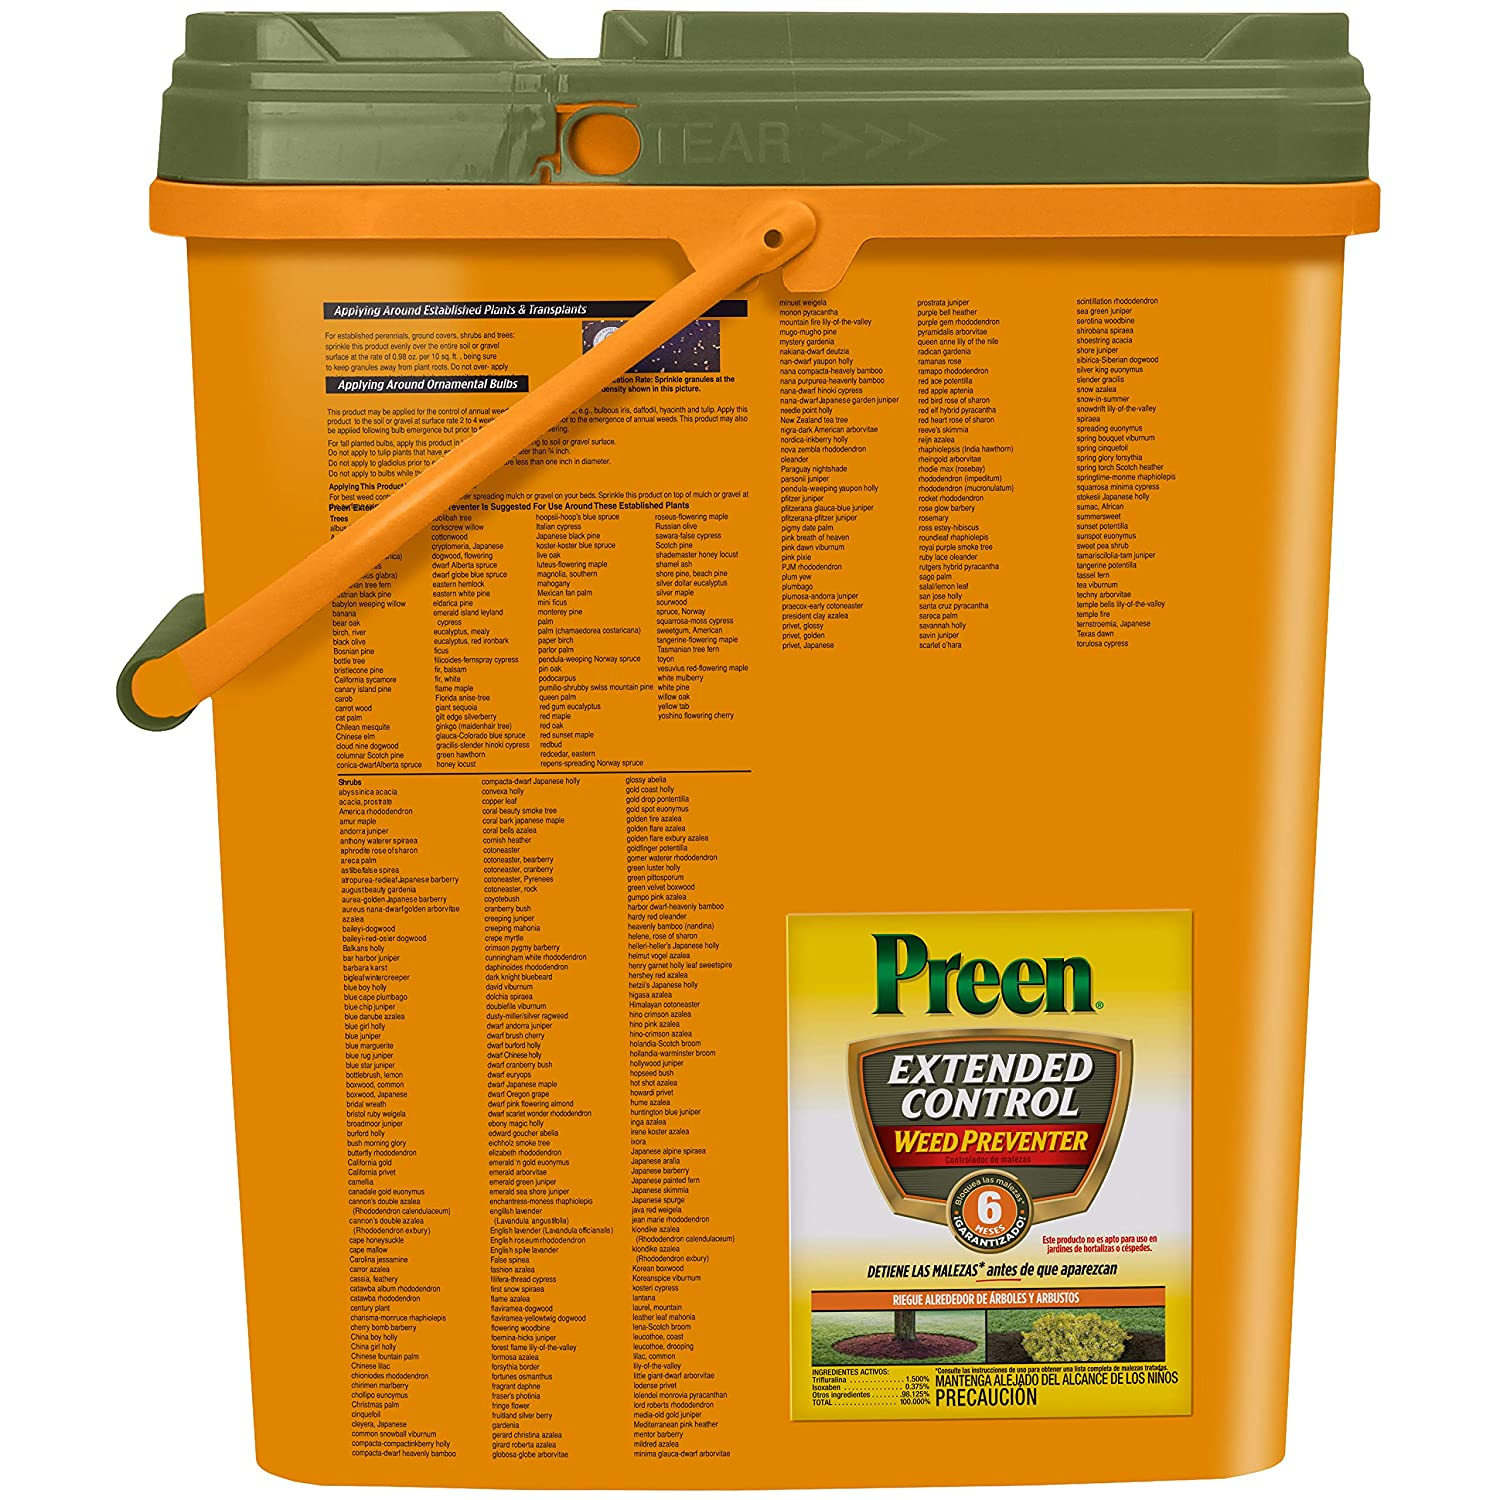 Amazon.com : Preen Extended Control Weed Preventer, 13.75 lb pail covers 2, 245 sq ft : Garden & Outdoor